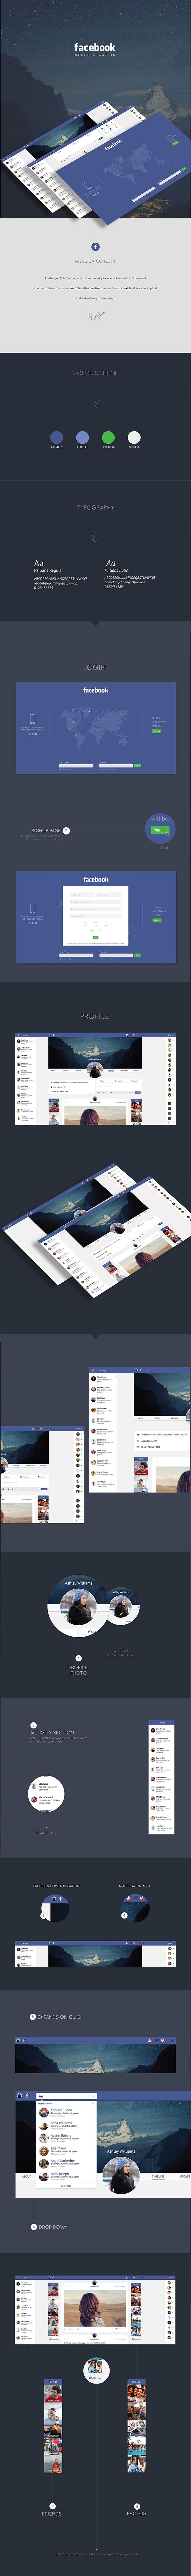 25 Interesting Redesign Concepts Of Famous Websites/Apps  Facebook Redesign